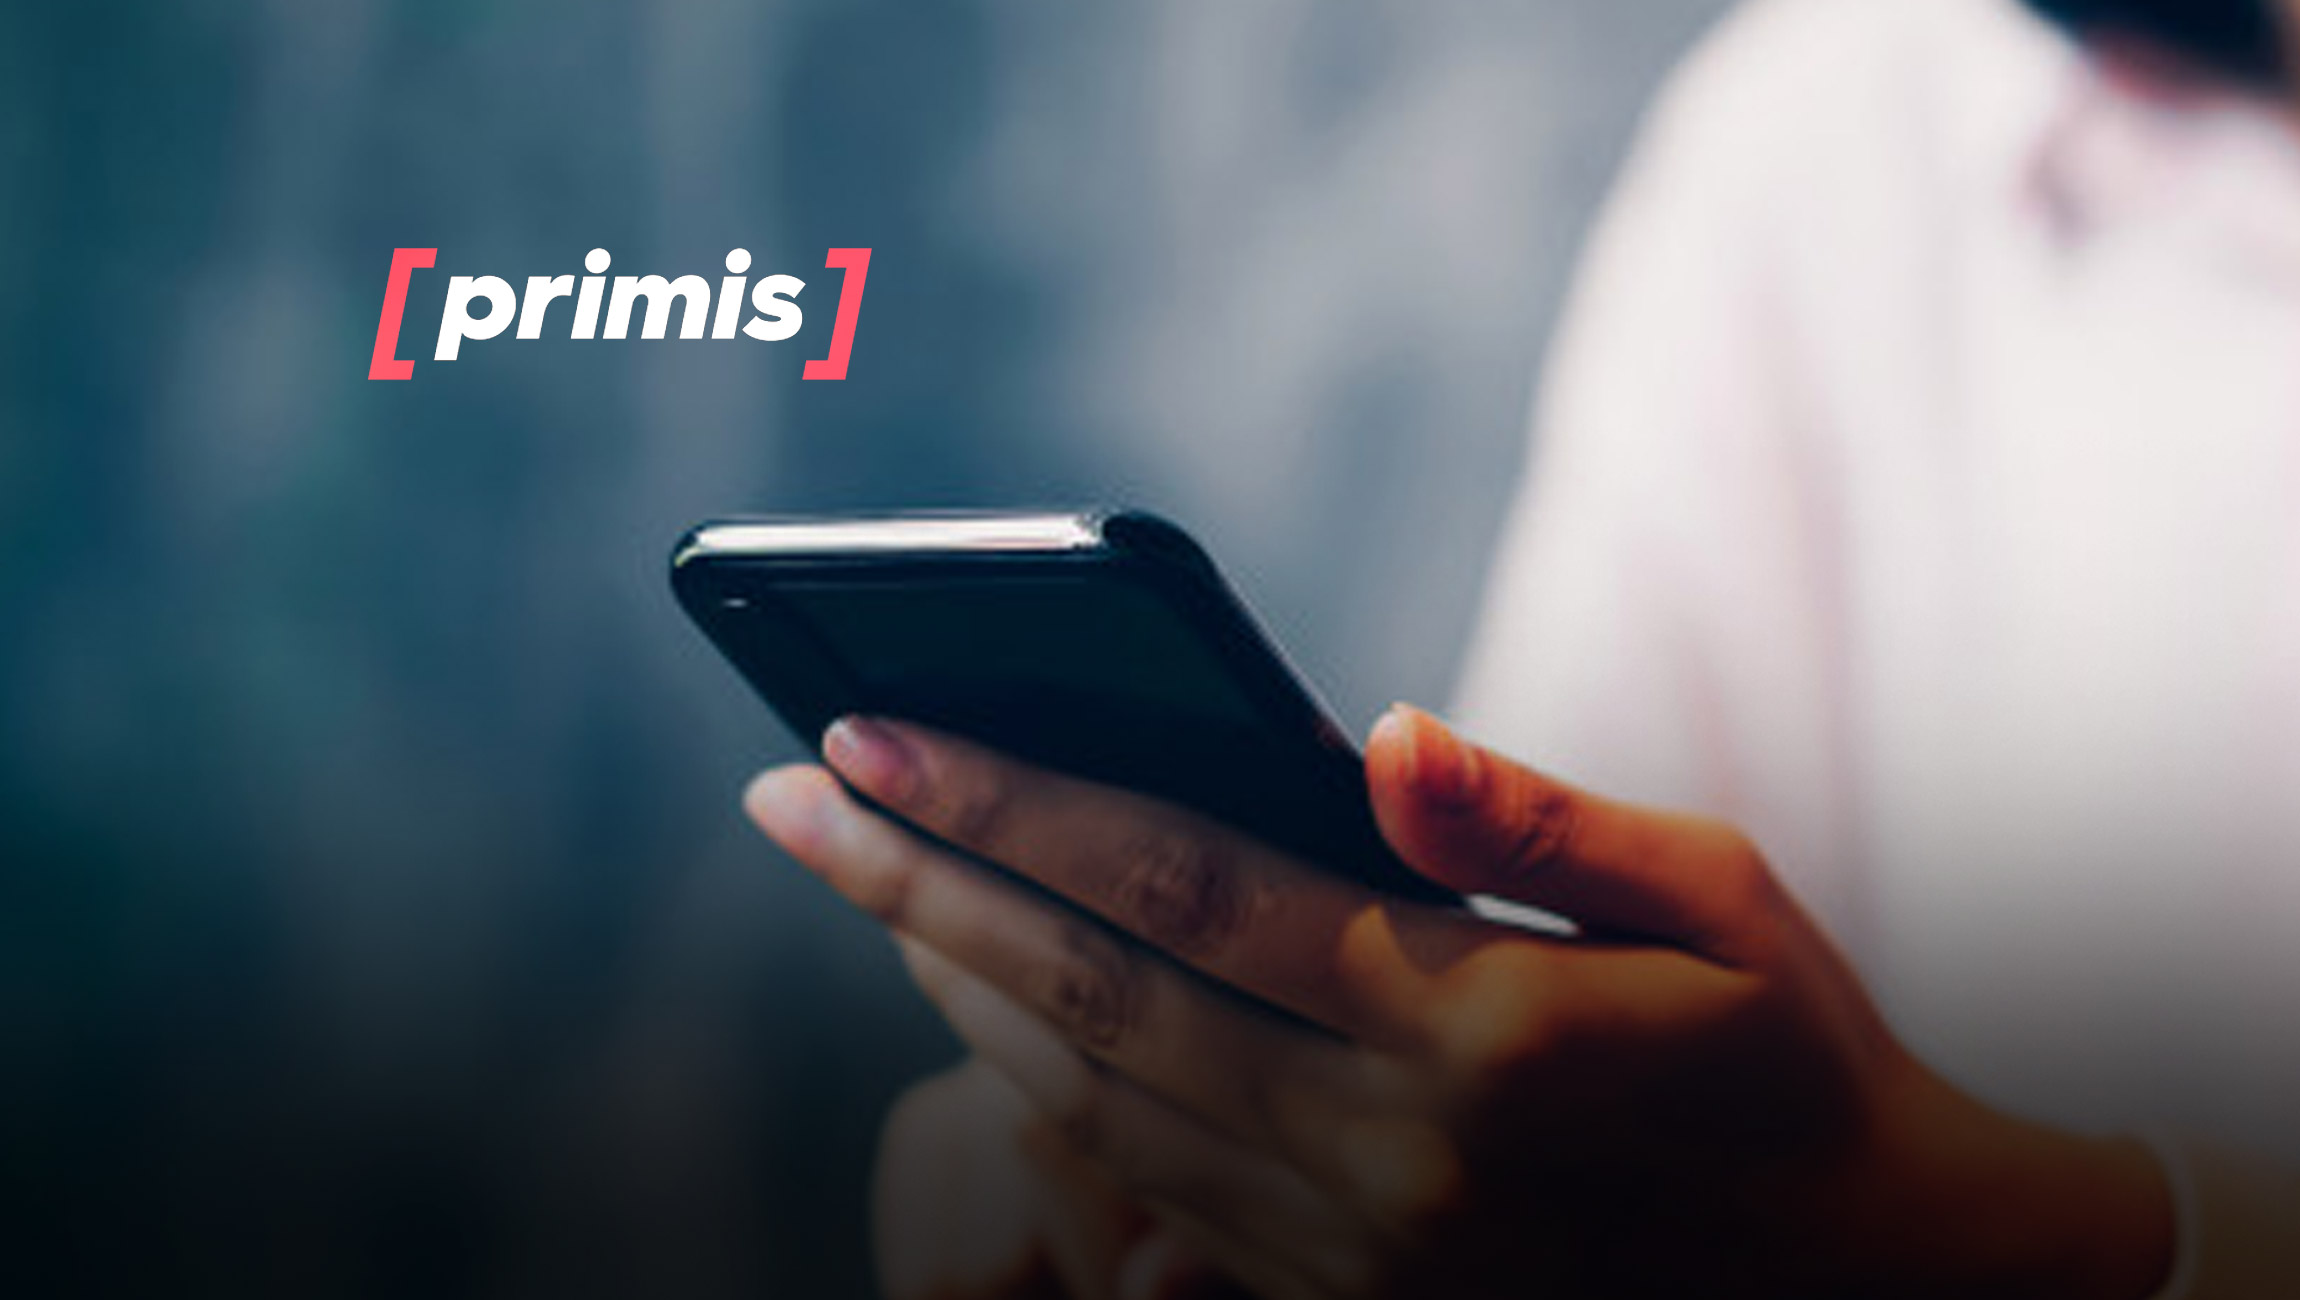 Primis, Video Discovery Launches Primis Next - the Next Evolution in Video Discovery